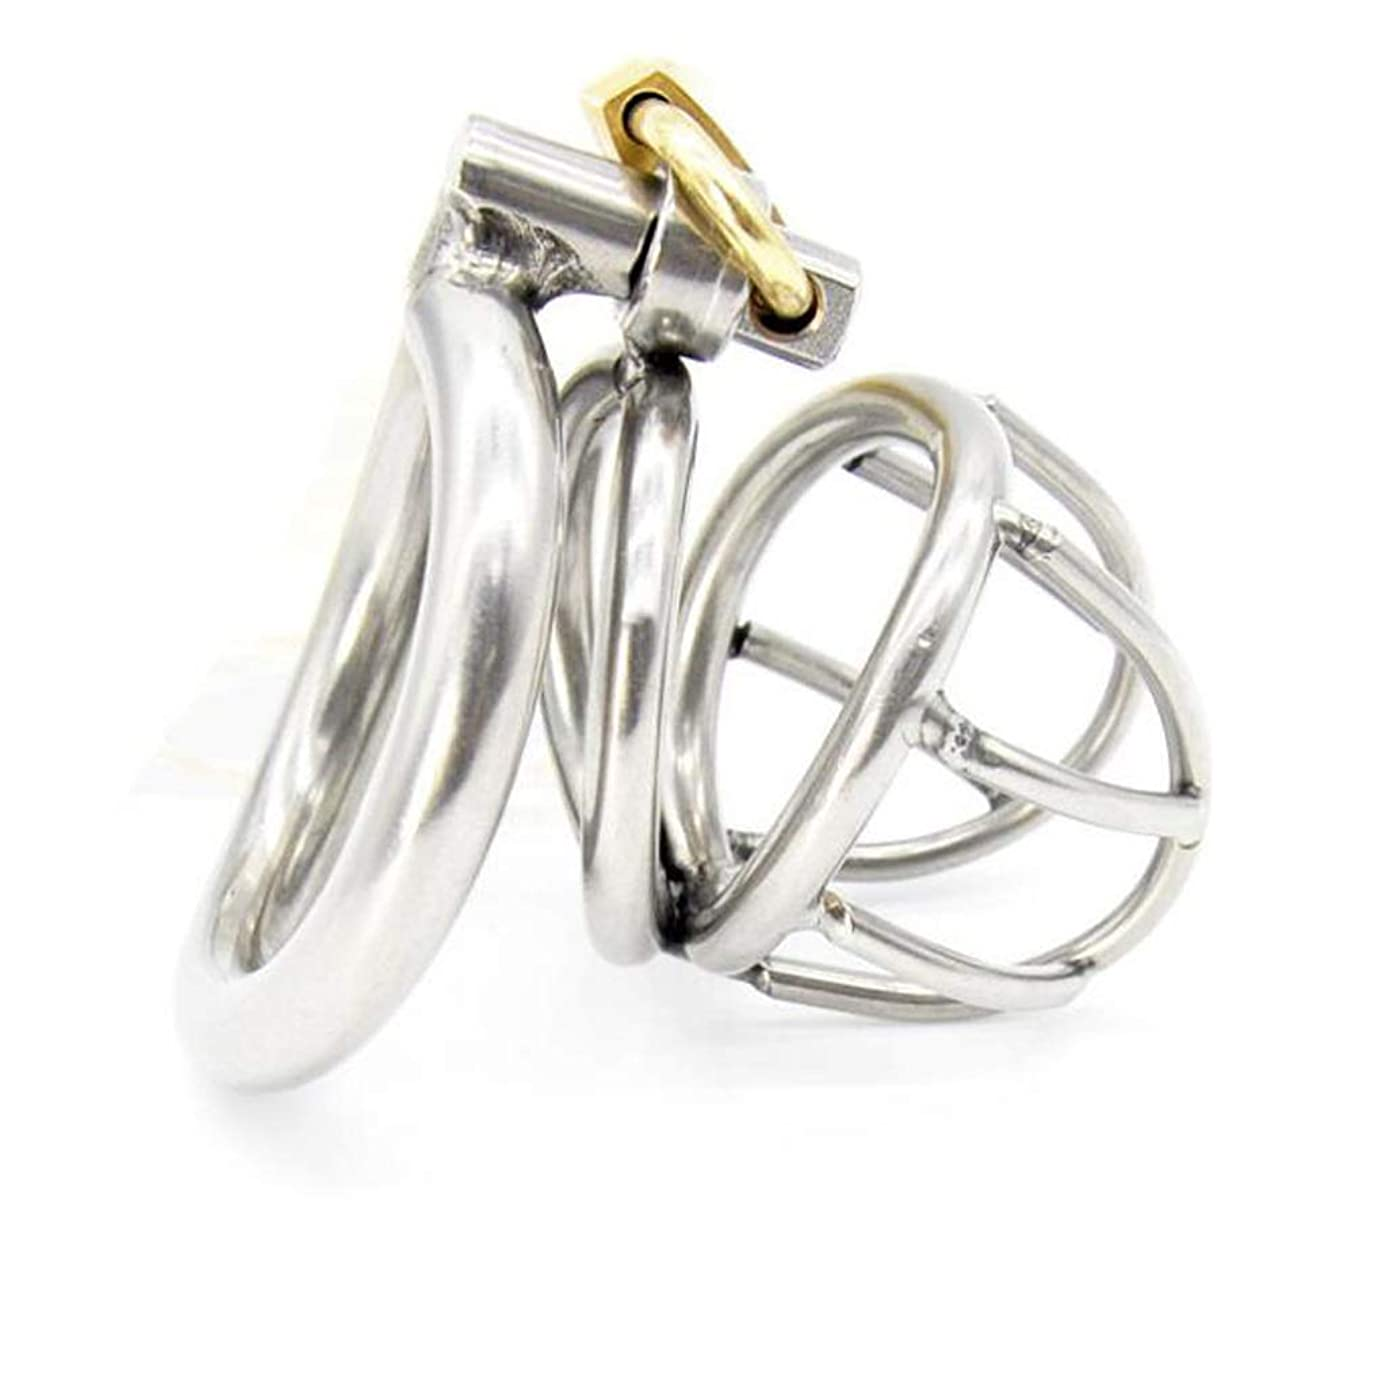 CJH Two-Ring Male Chastity Lock Stainless Steel Metal Curved Ring Axe Chicken Cage